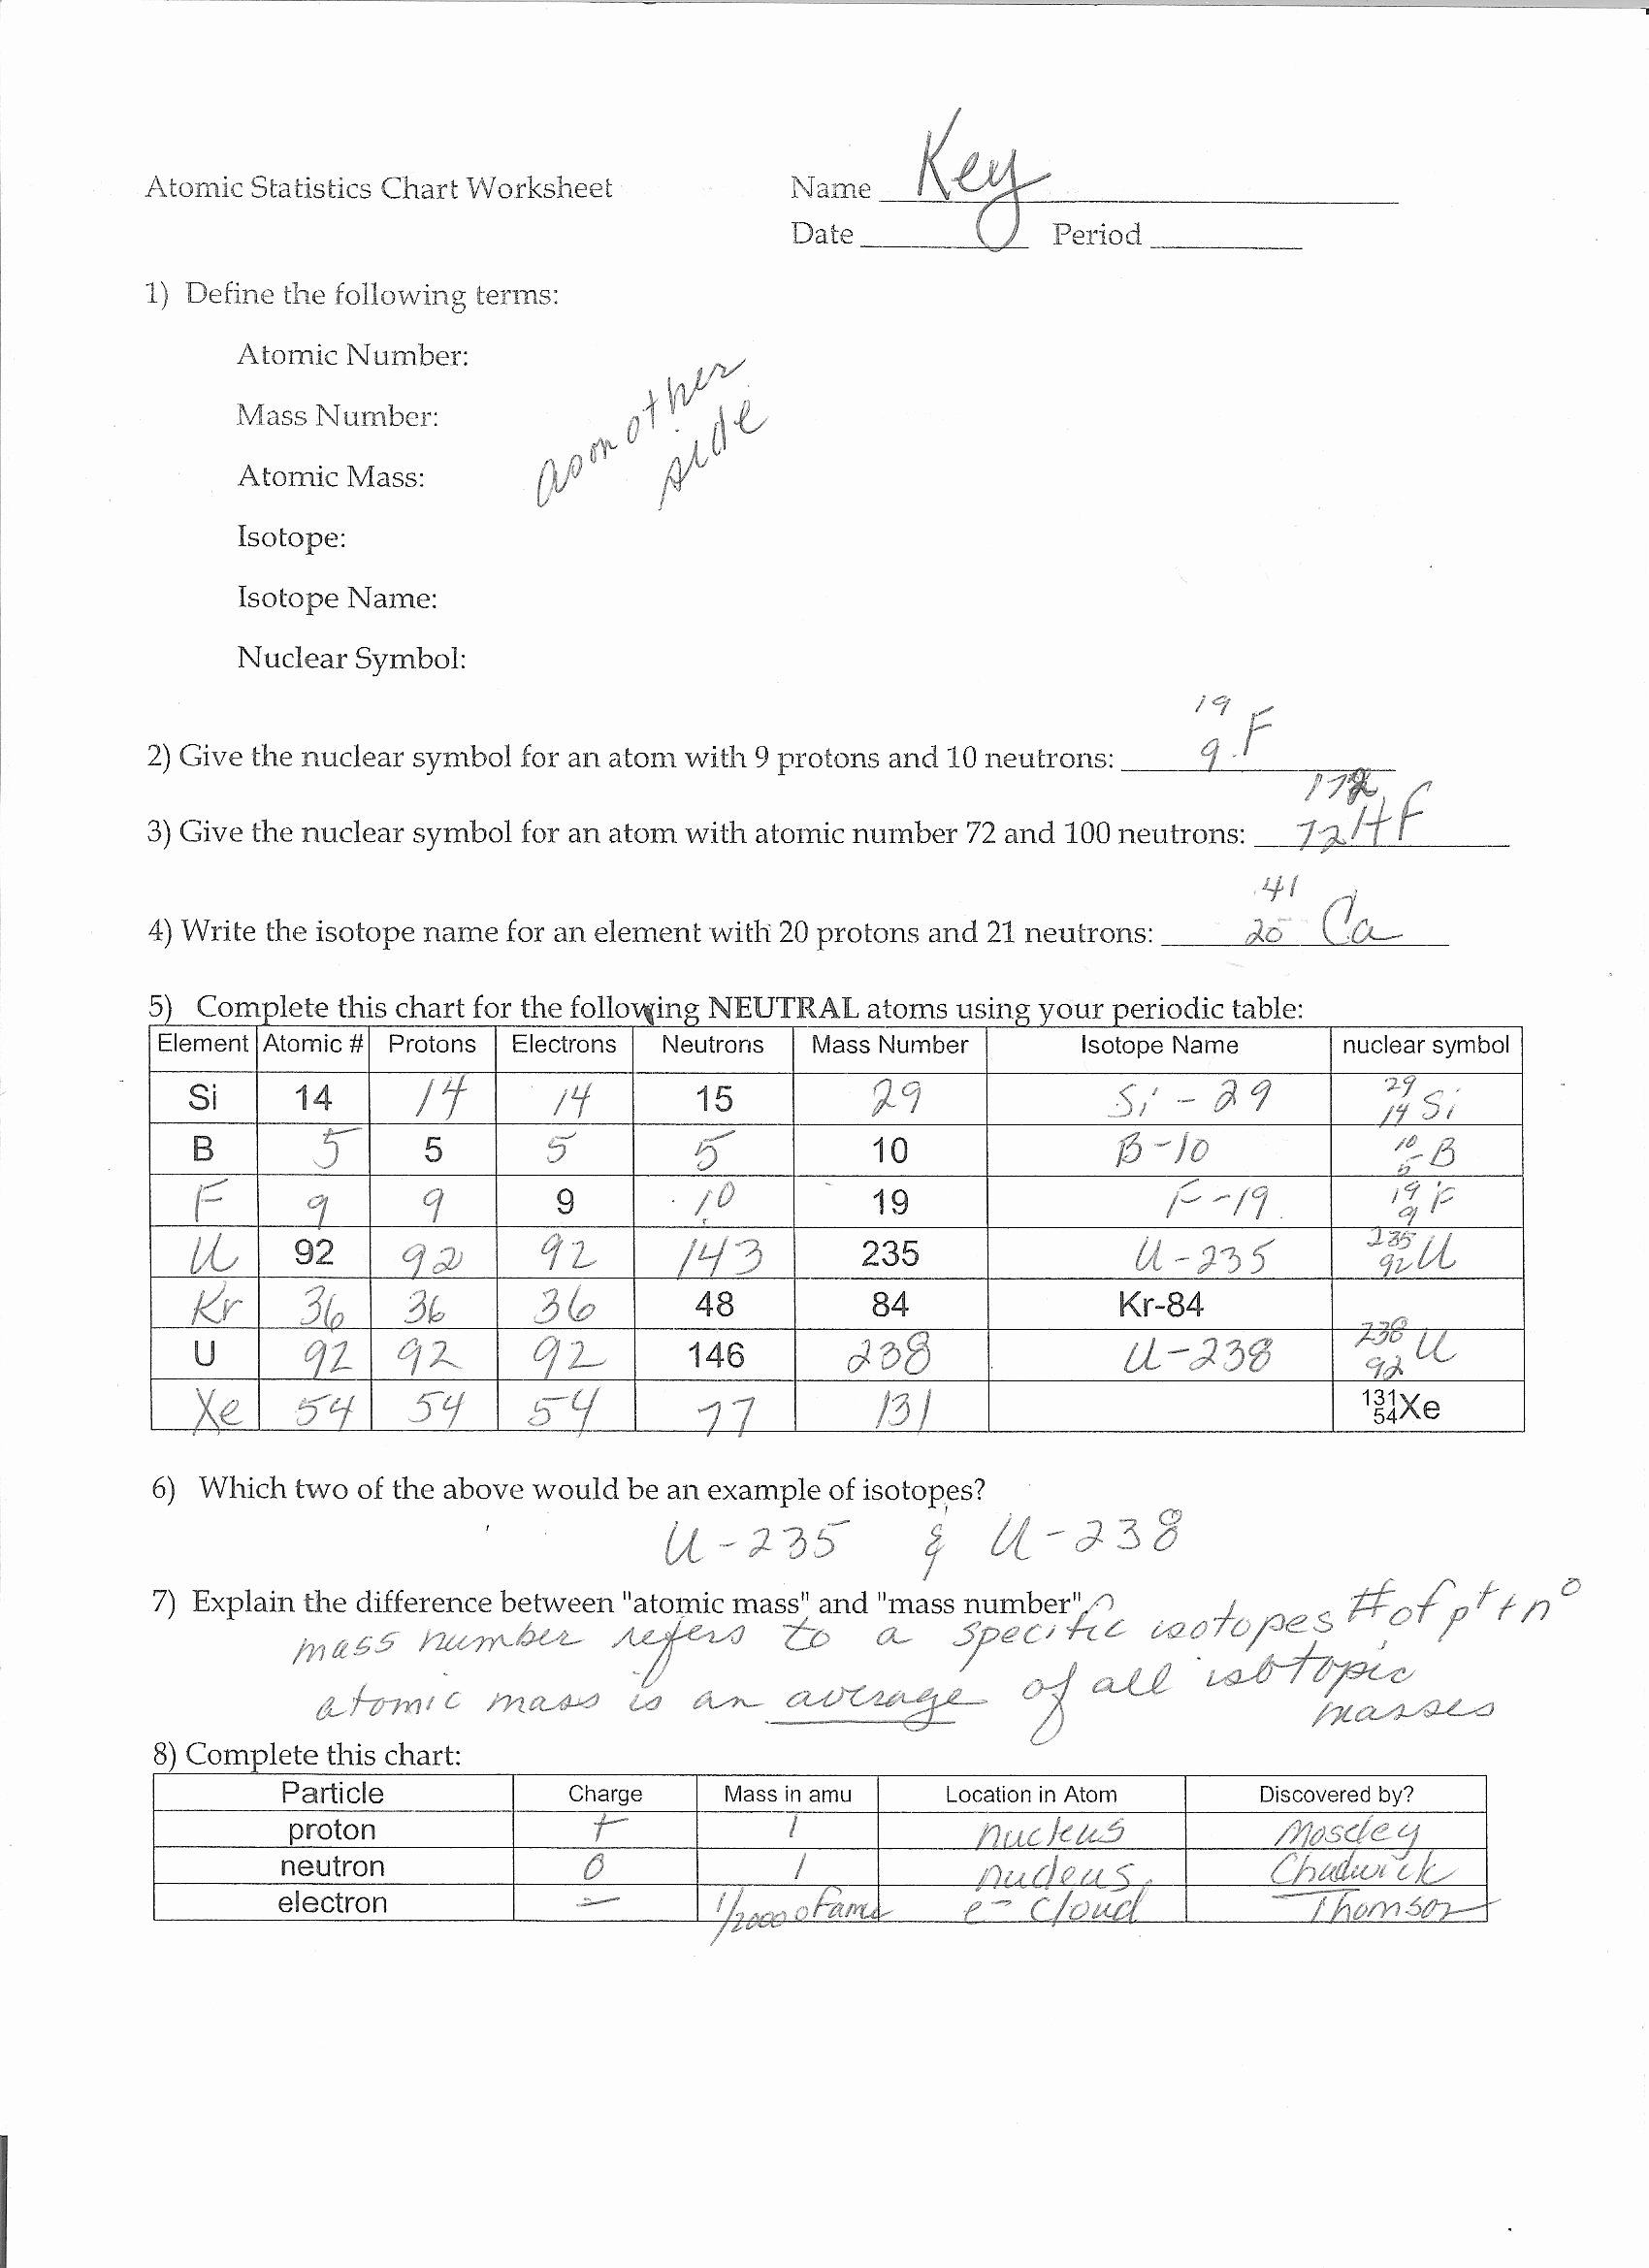 Drawing atoms Worksheet Answer Key Inspirational Structure the atom Worksheet Answers Promotiontablecovers